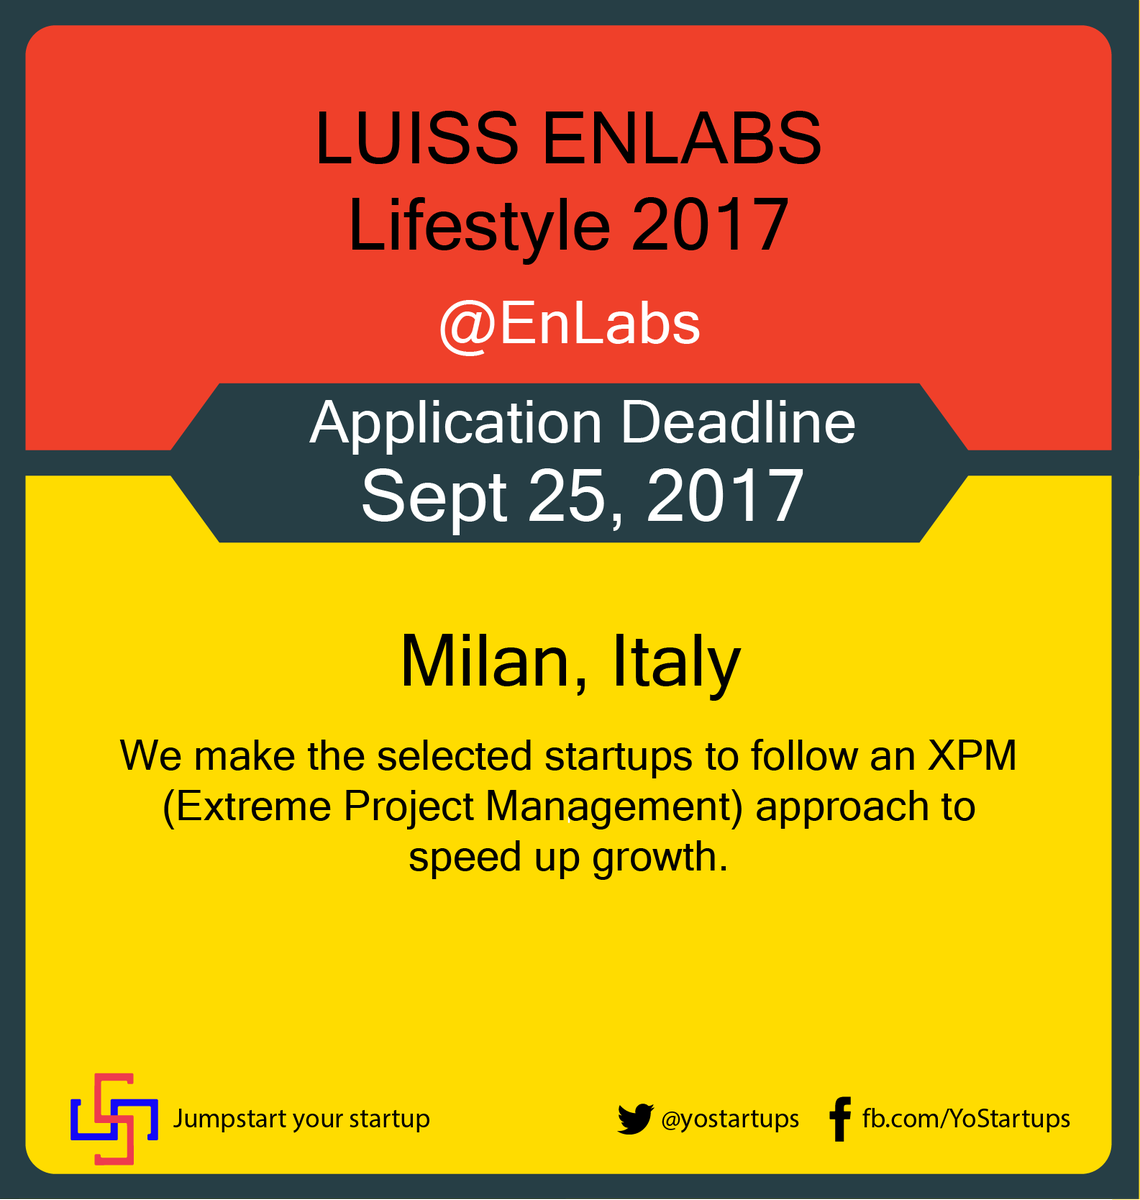 Checkout @EnLabs growing #startups to infinity and beyond #Startup #Accelerator #YoStartups  https:// goo.gl/5dBahX  &nbsp;  <br>http://pic.twitter.com/wZb5k9h44G